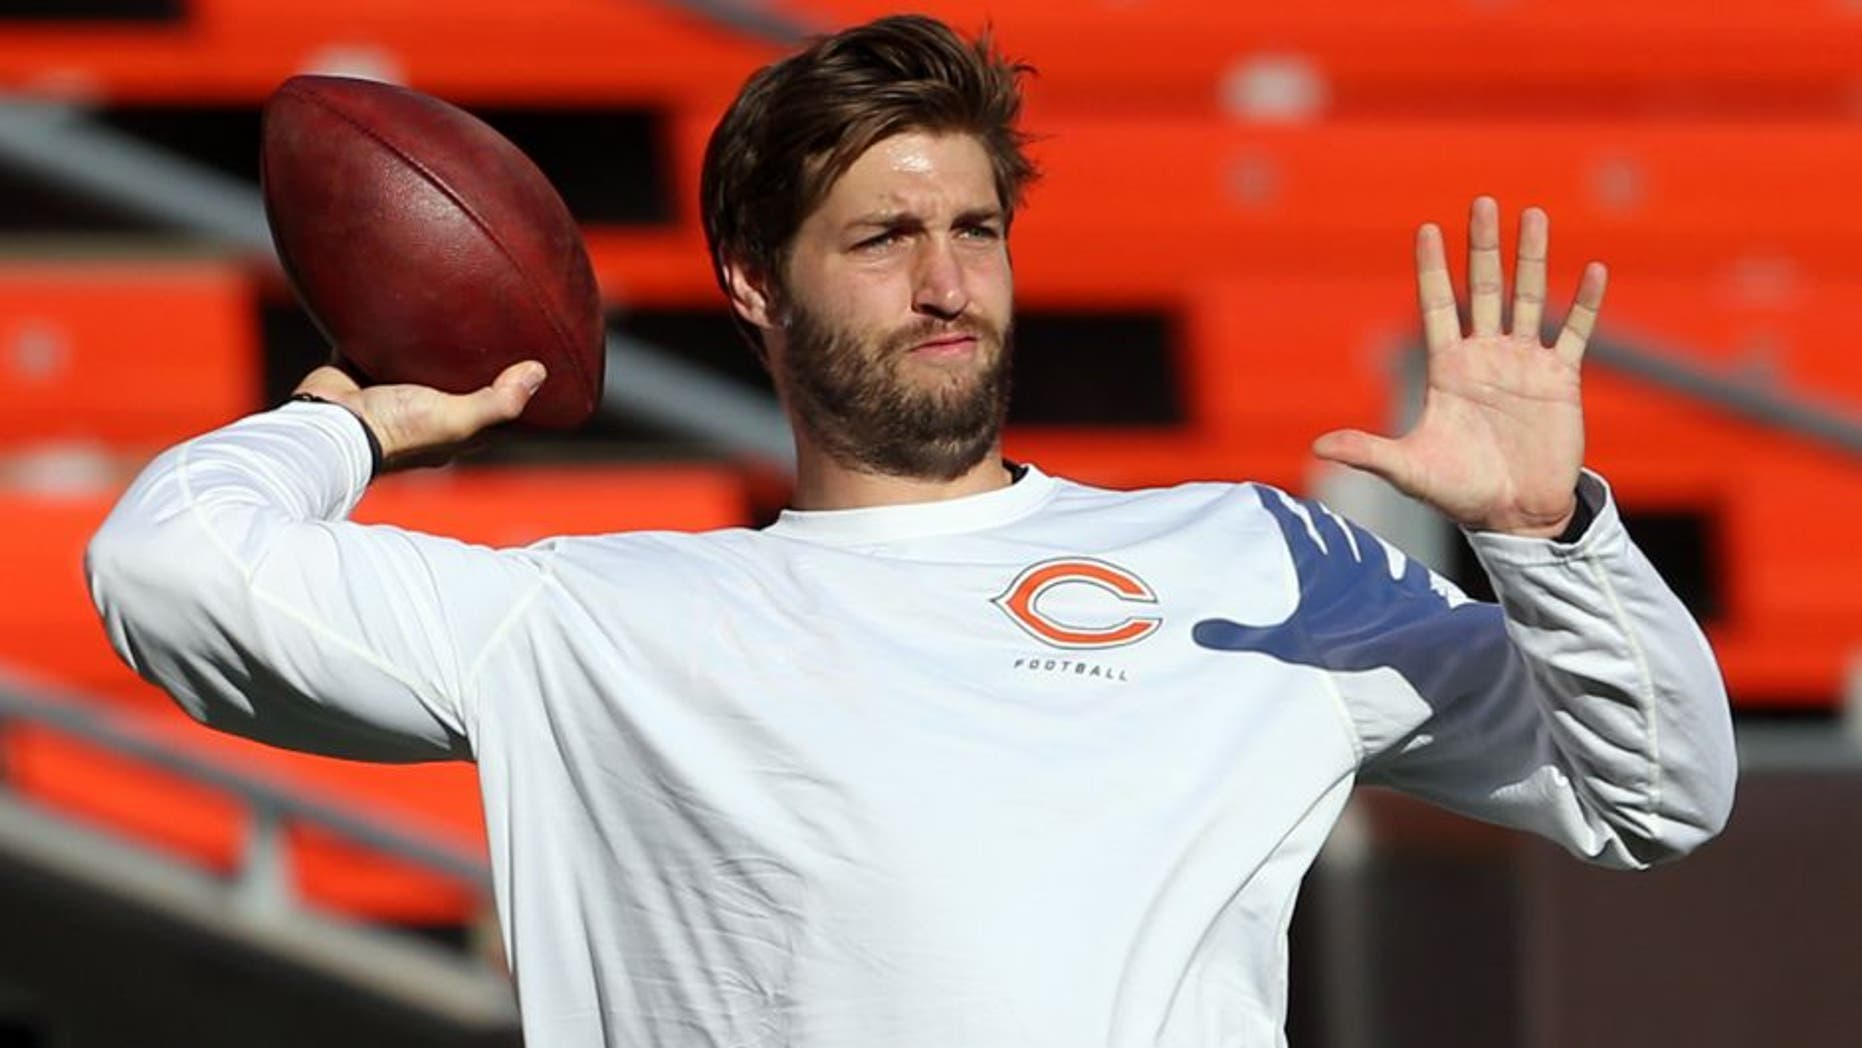 Aug 28, 2014; Cleveland, OH, USA; Chicago Bears quarterback Jay Cutler (6) warms up before a game against the Cleveland Browns at FirstEnergy Stadium. Mandatory Credit: Ron Schwane-USA TODAY Sports